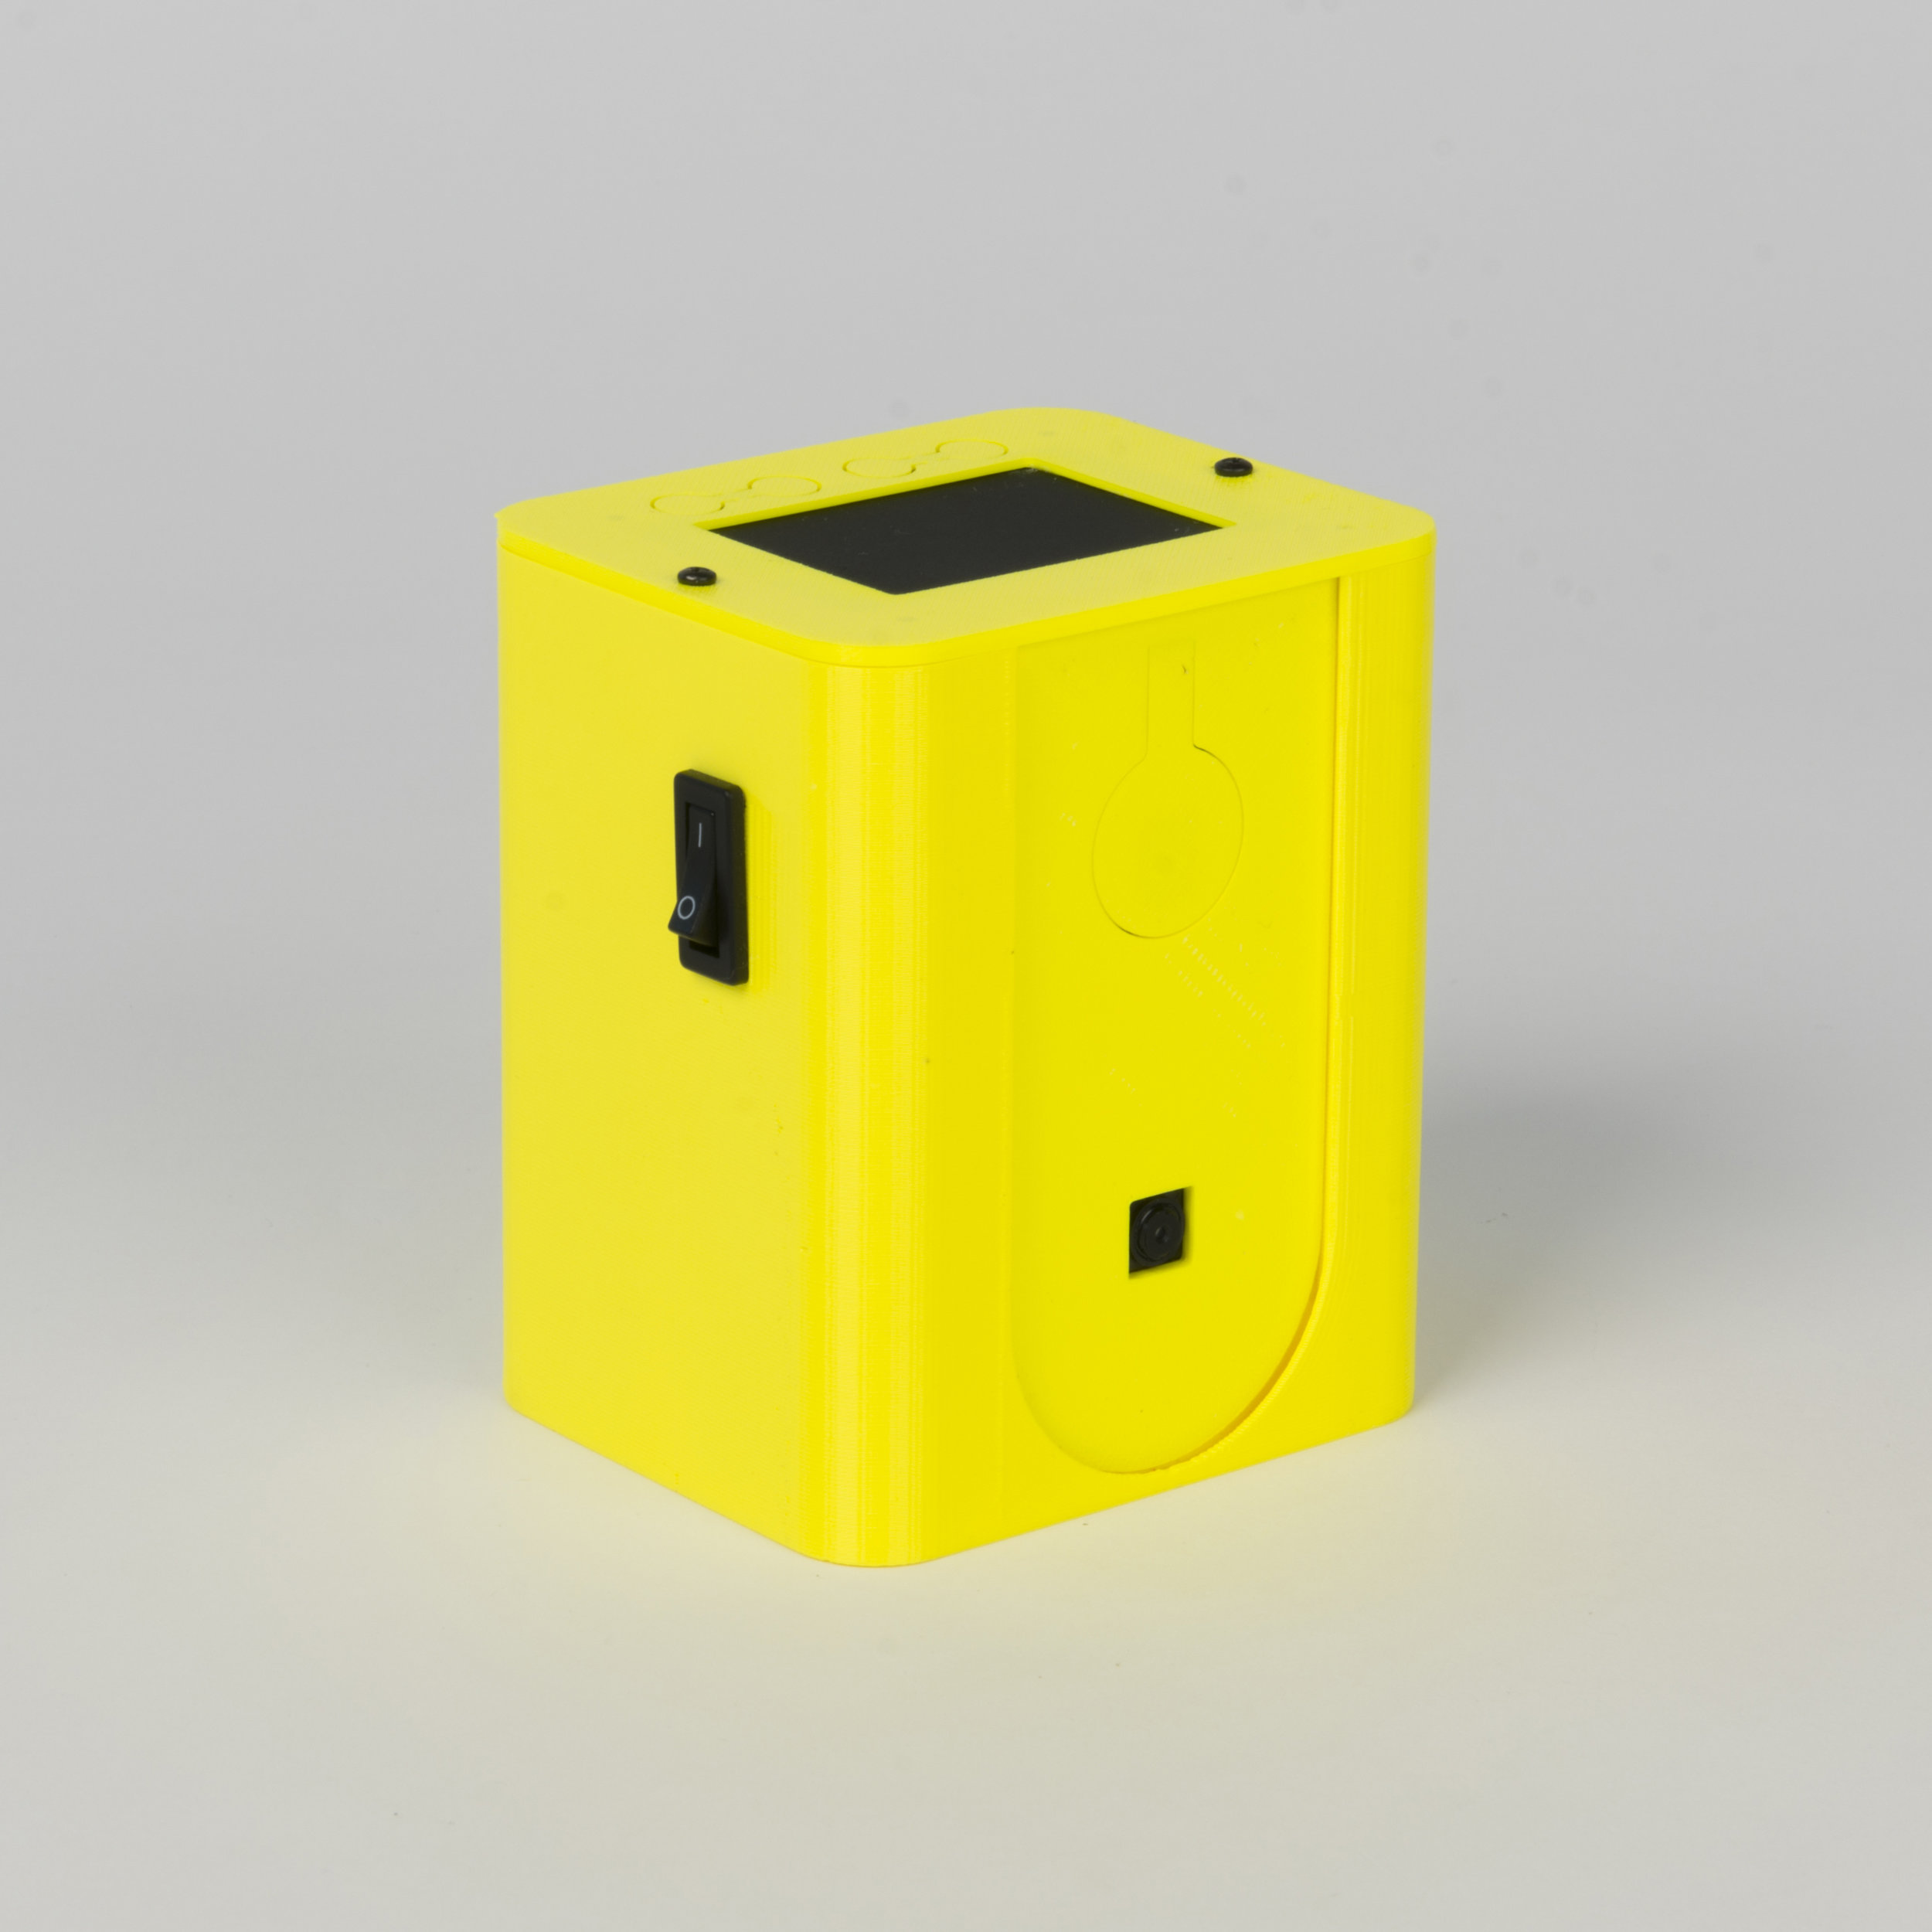 Tall Box Camera    This is a complex housing constructed from three 3D printed parts which orienate the Raspberry Pi and screen perpendicular to each other, requiring a set of jumper wires to connect the input/output pins of the adjacent boards..  more